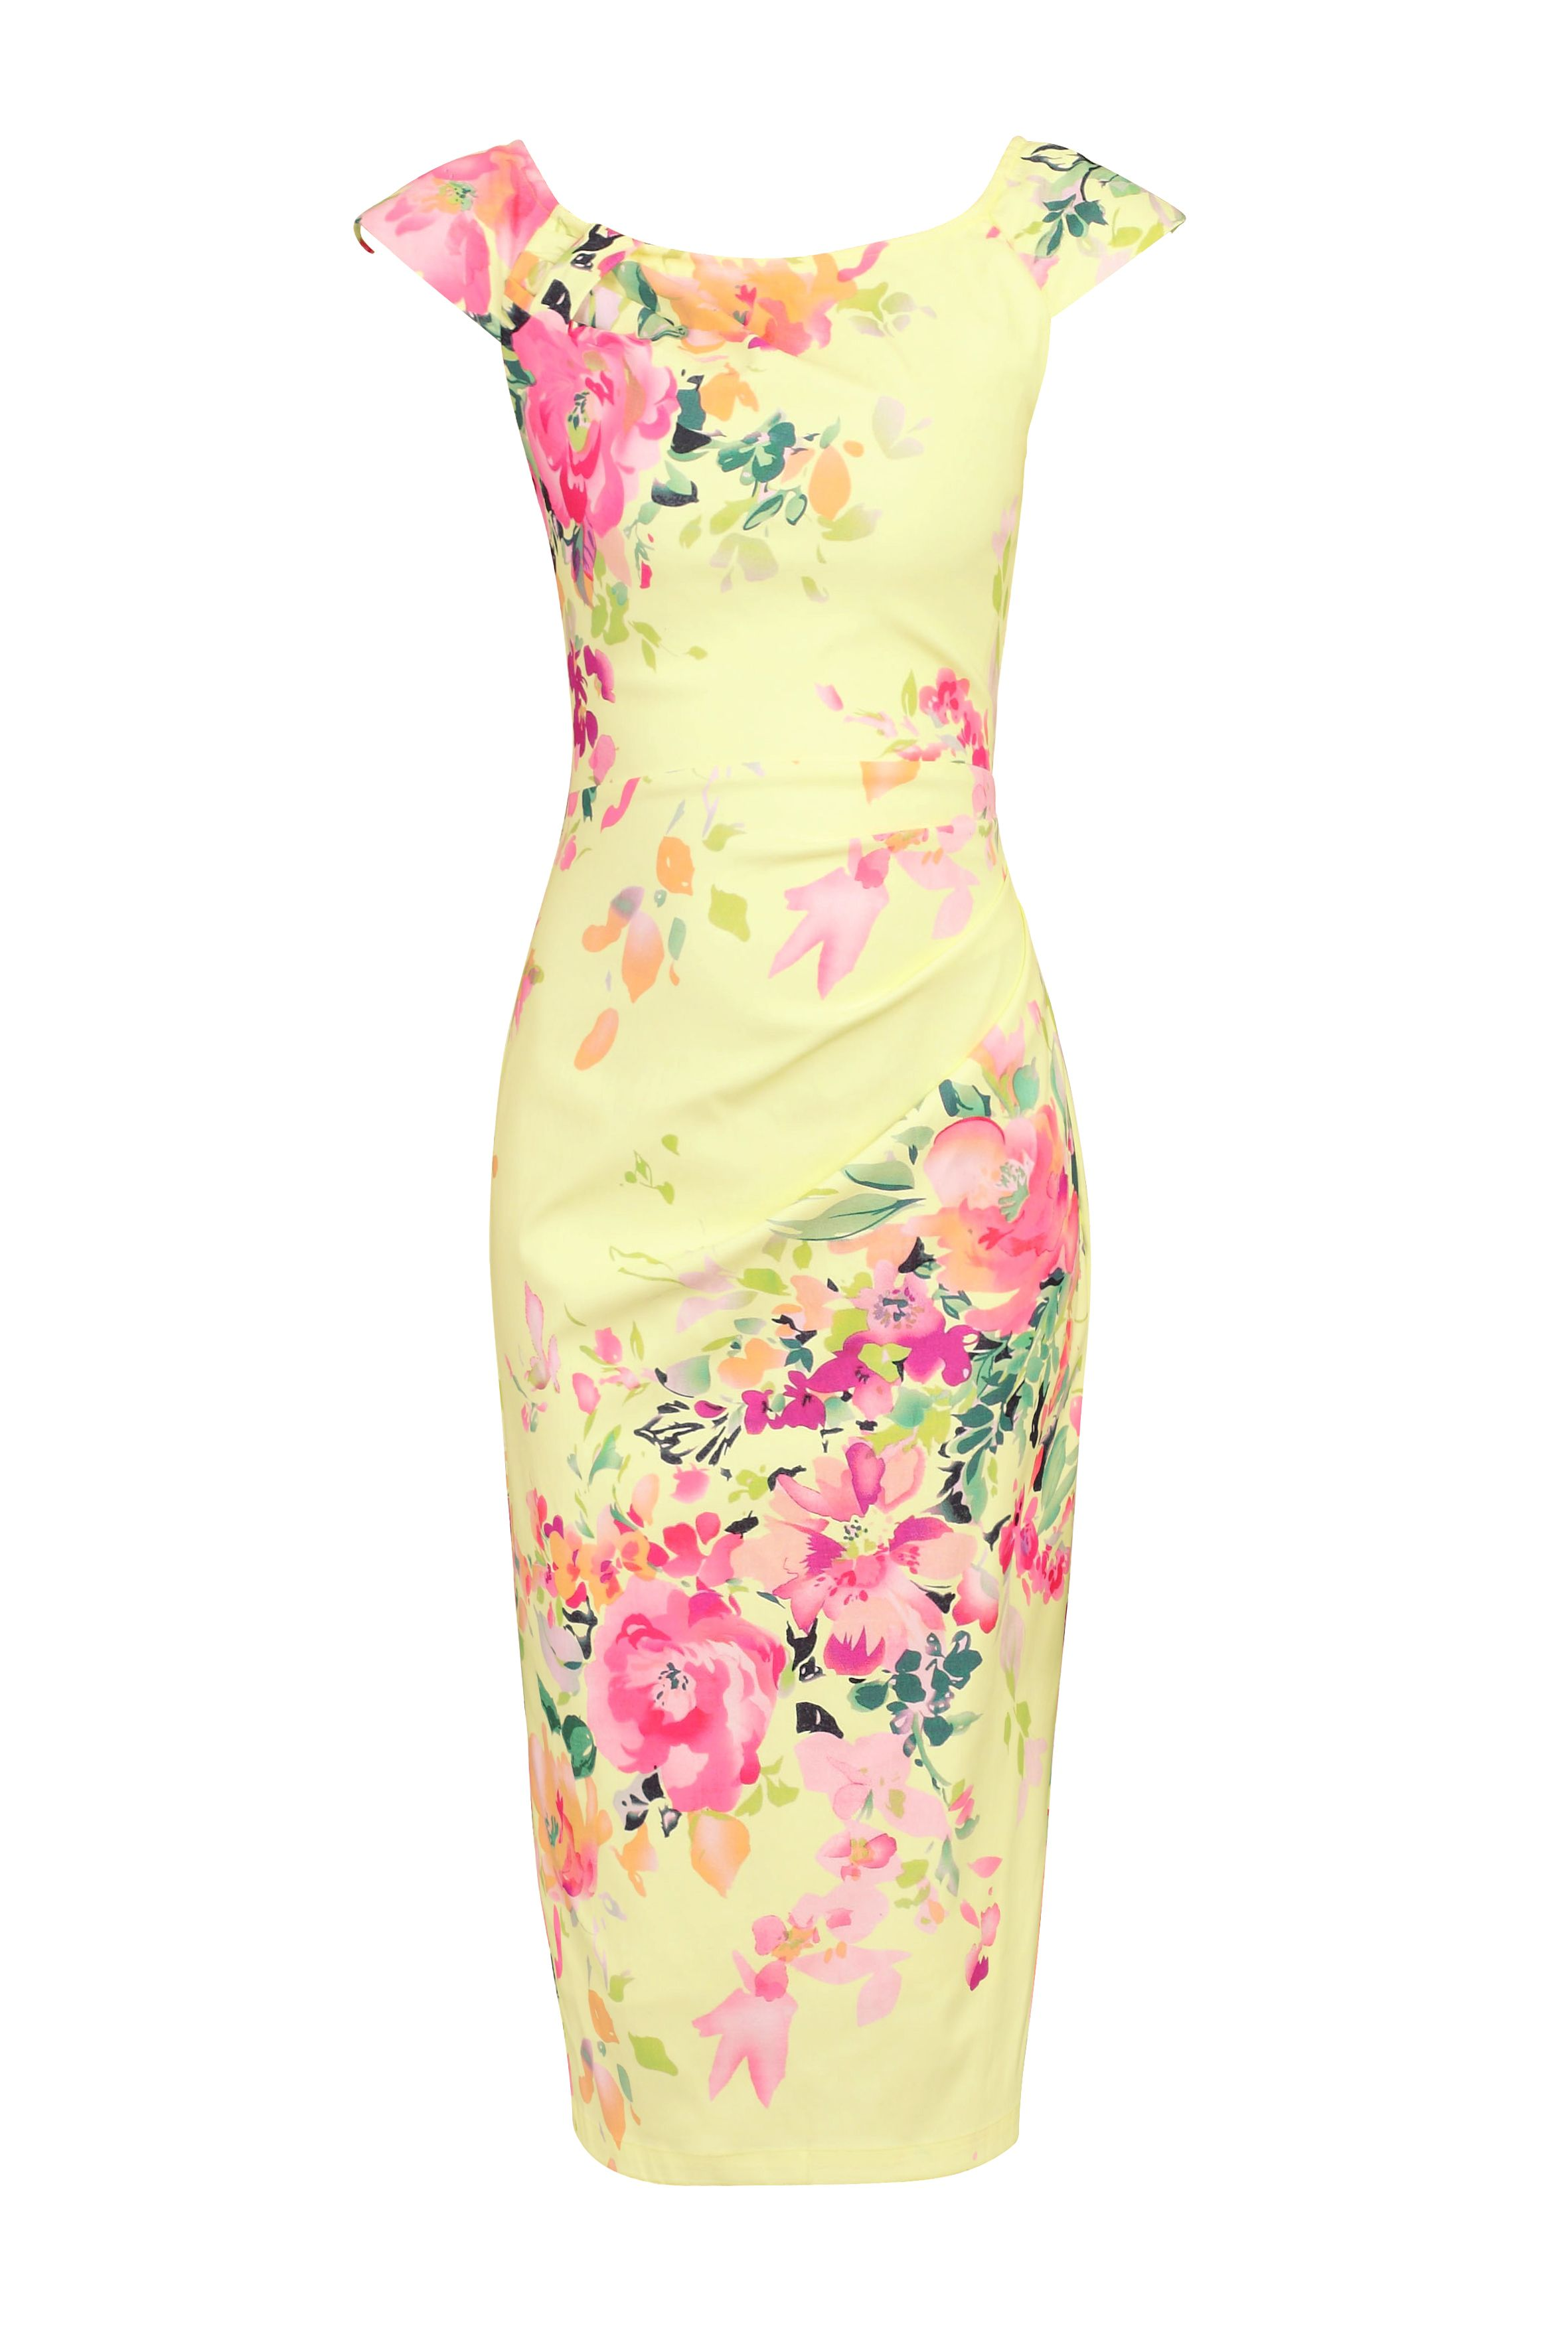 Jolie Moi Floral Print Ruched Wiggle Dress, Yellow